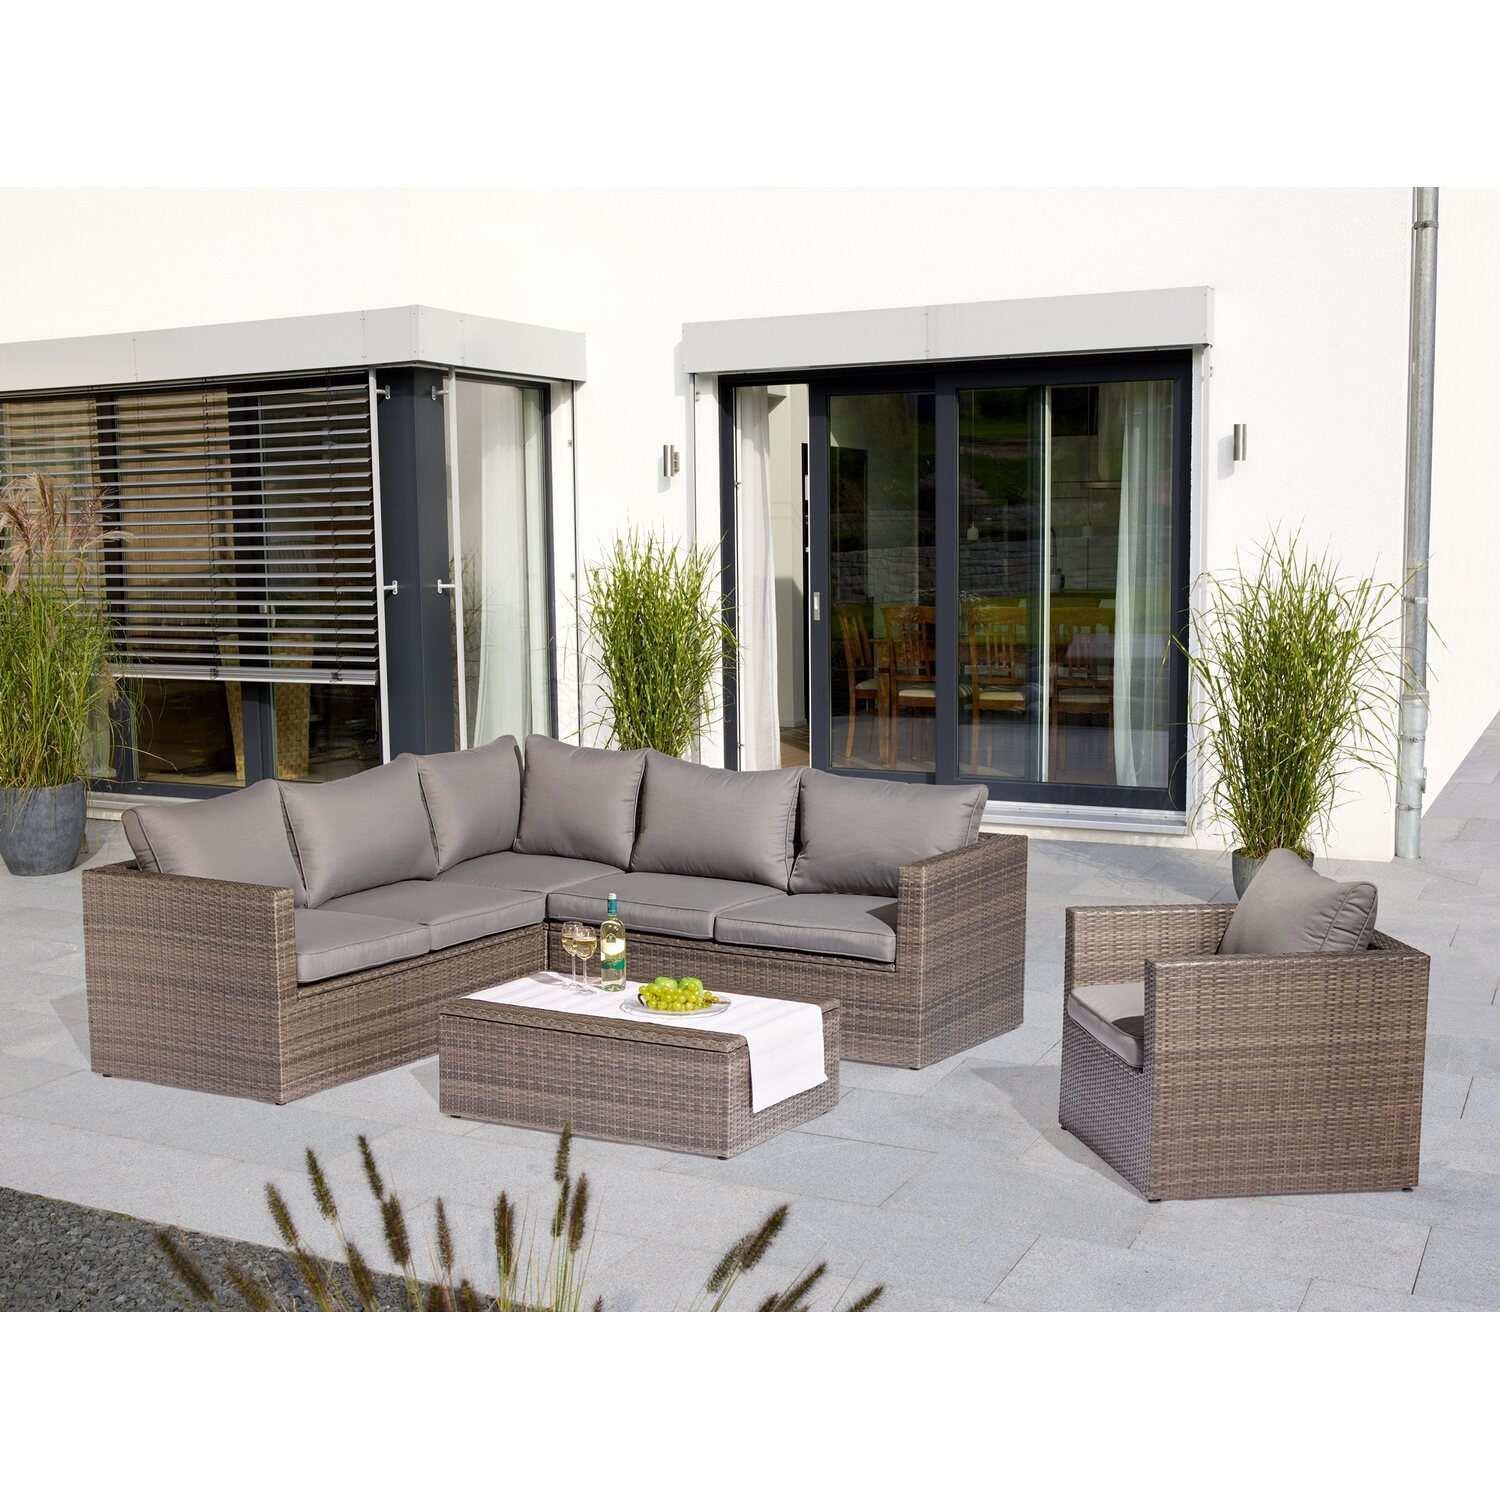 neueste balkonverkleidung kunststoff obi schema terrasse design ideen. Black Bedroom Furniture Sets. Home Design Ideas